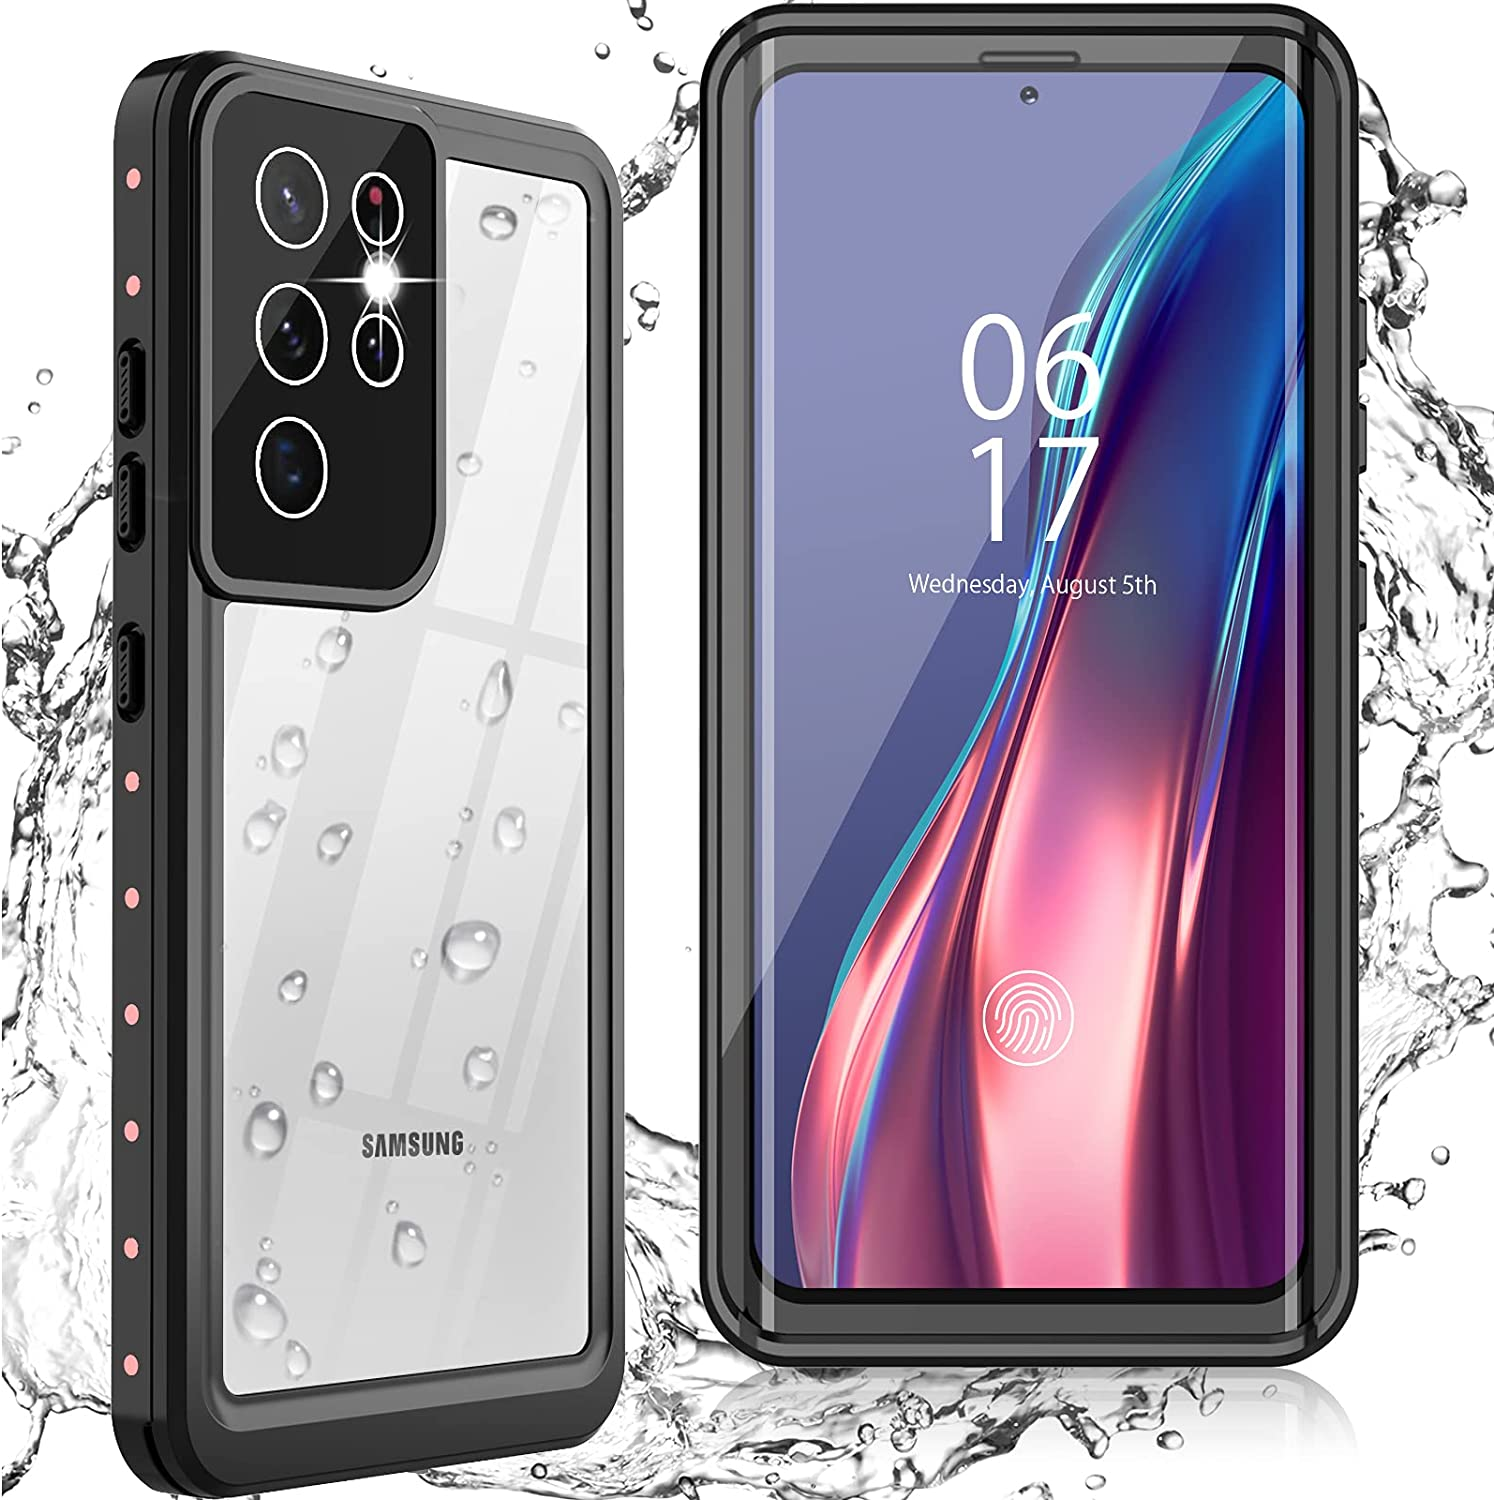 Oterkinfor Samsung Galaxy S21 Ultra Case,S21 Ultra Waterproof Casewith Built-in Screen Protector Dustproof Shockproof 360 Full Body Underwater Case for Samsung S21 Ultra 5G 6.8inch (Pink)